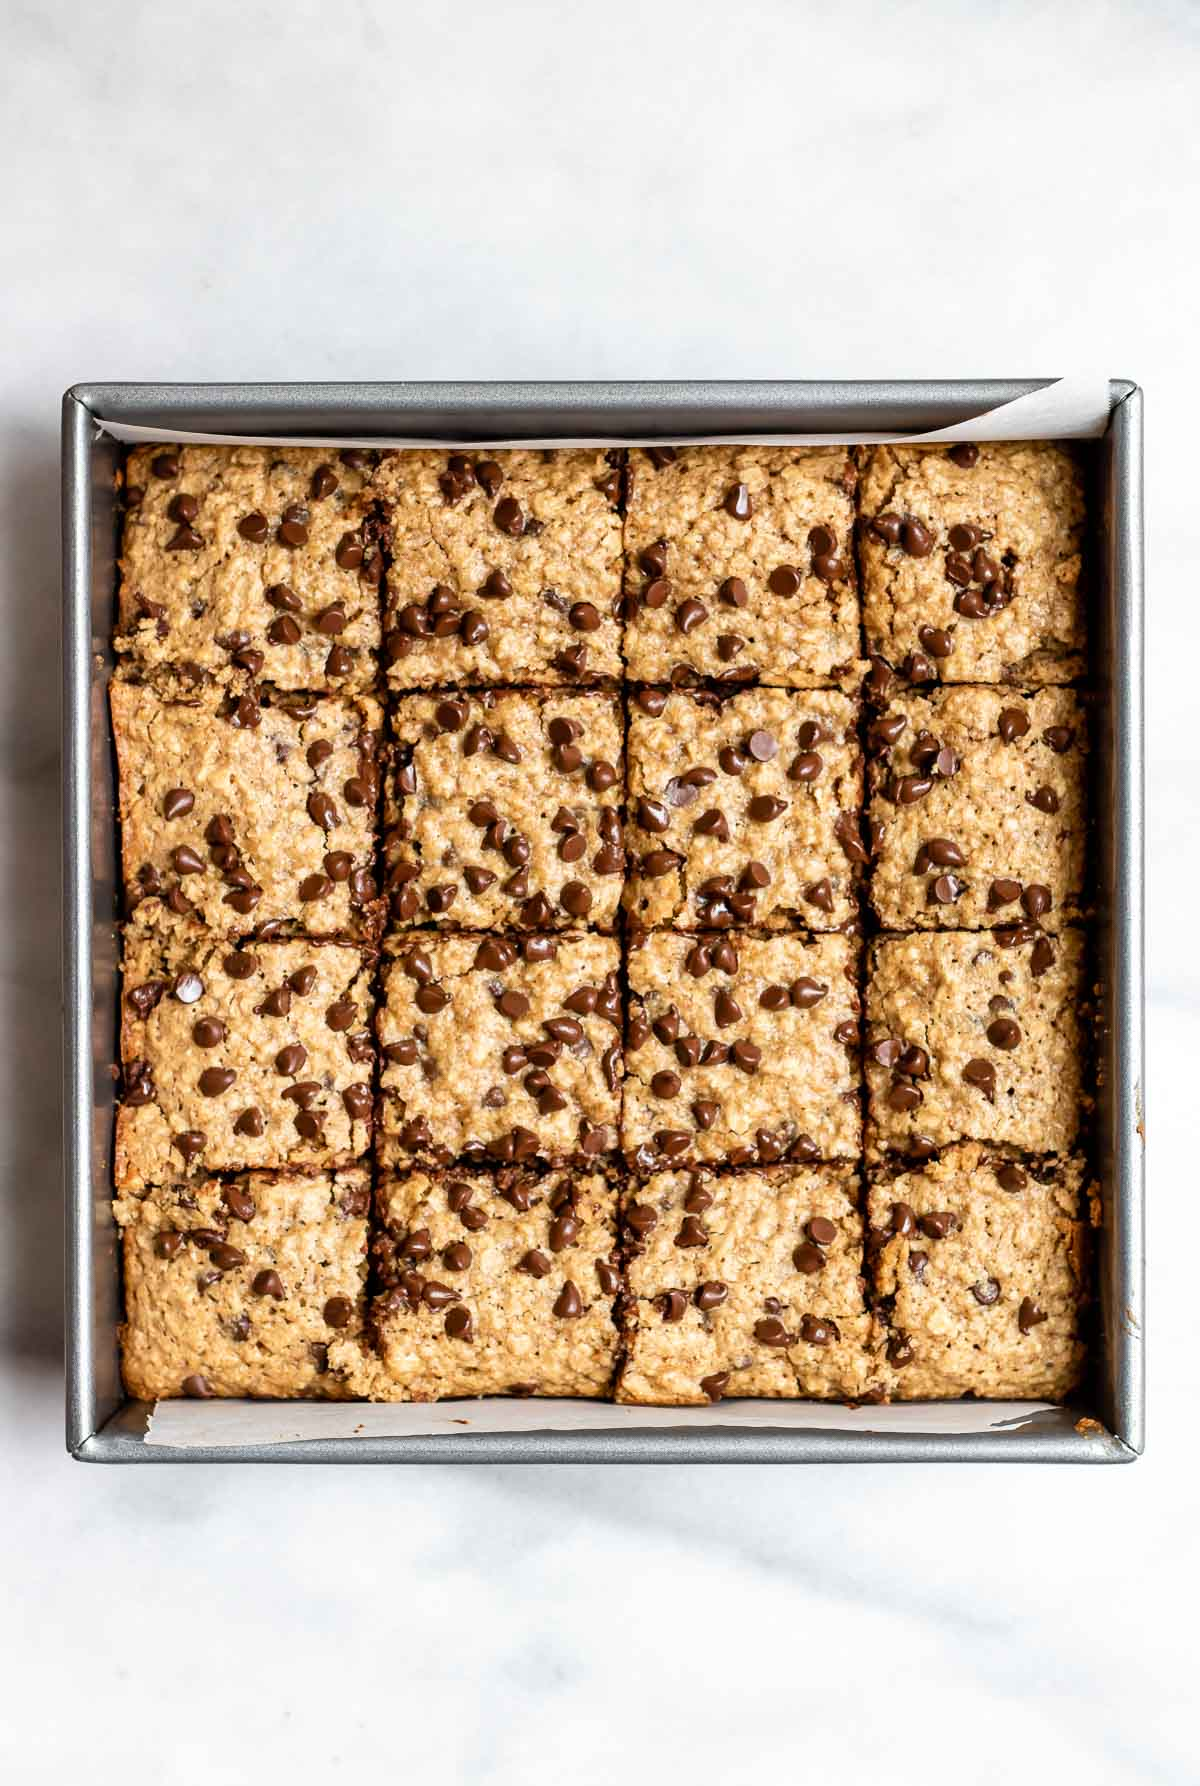 Cookie bars in a baking pan after coming out of the oven.